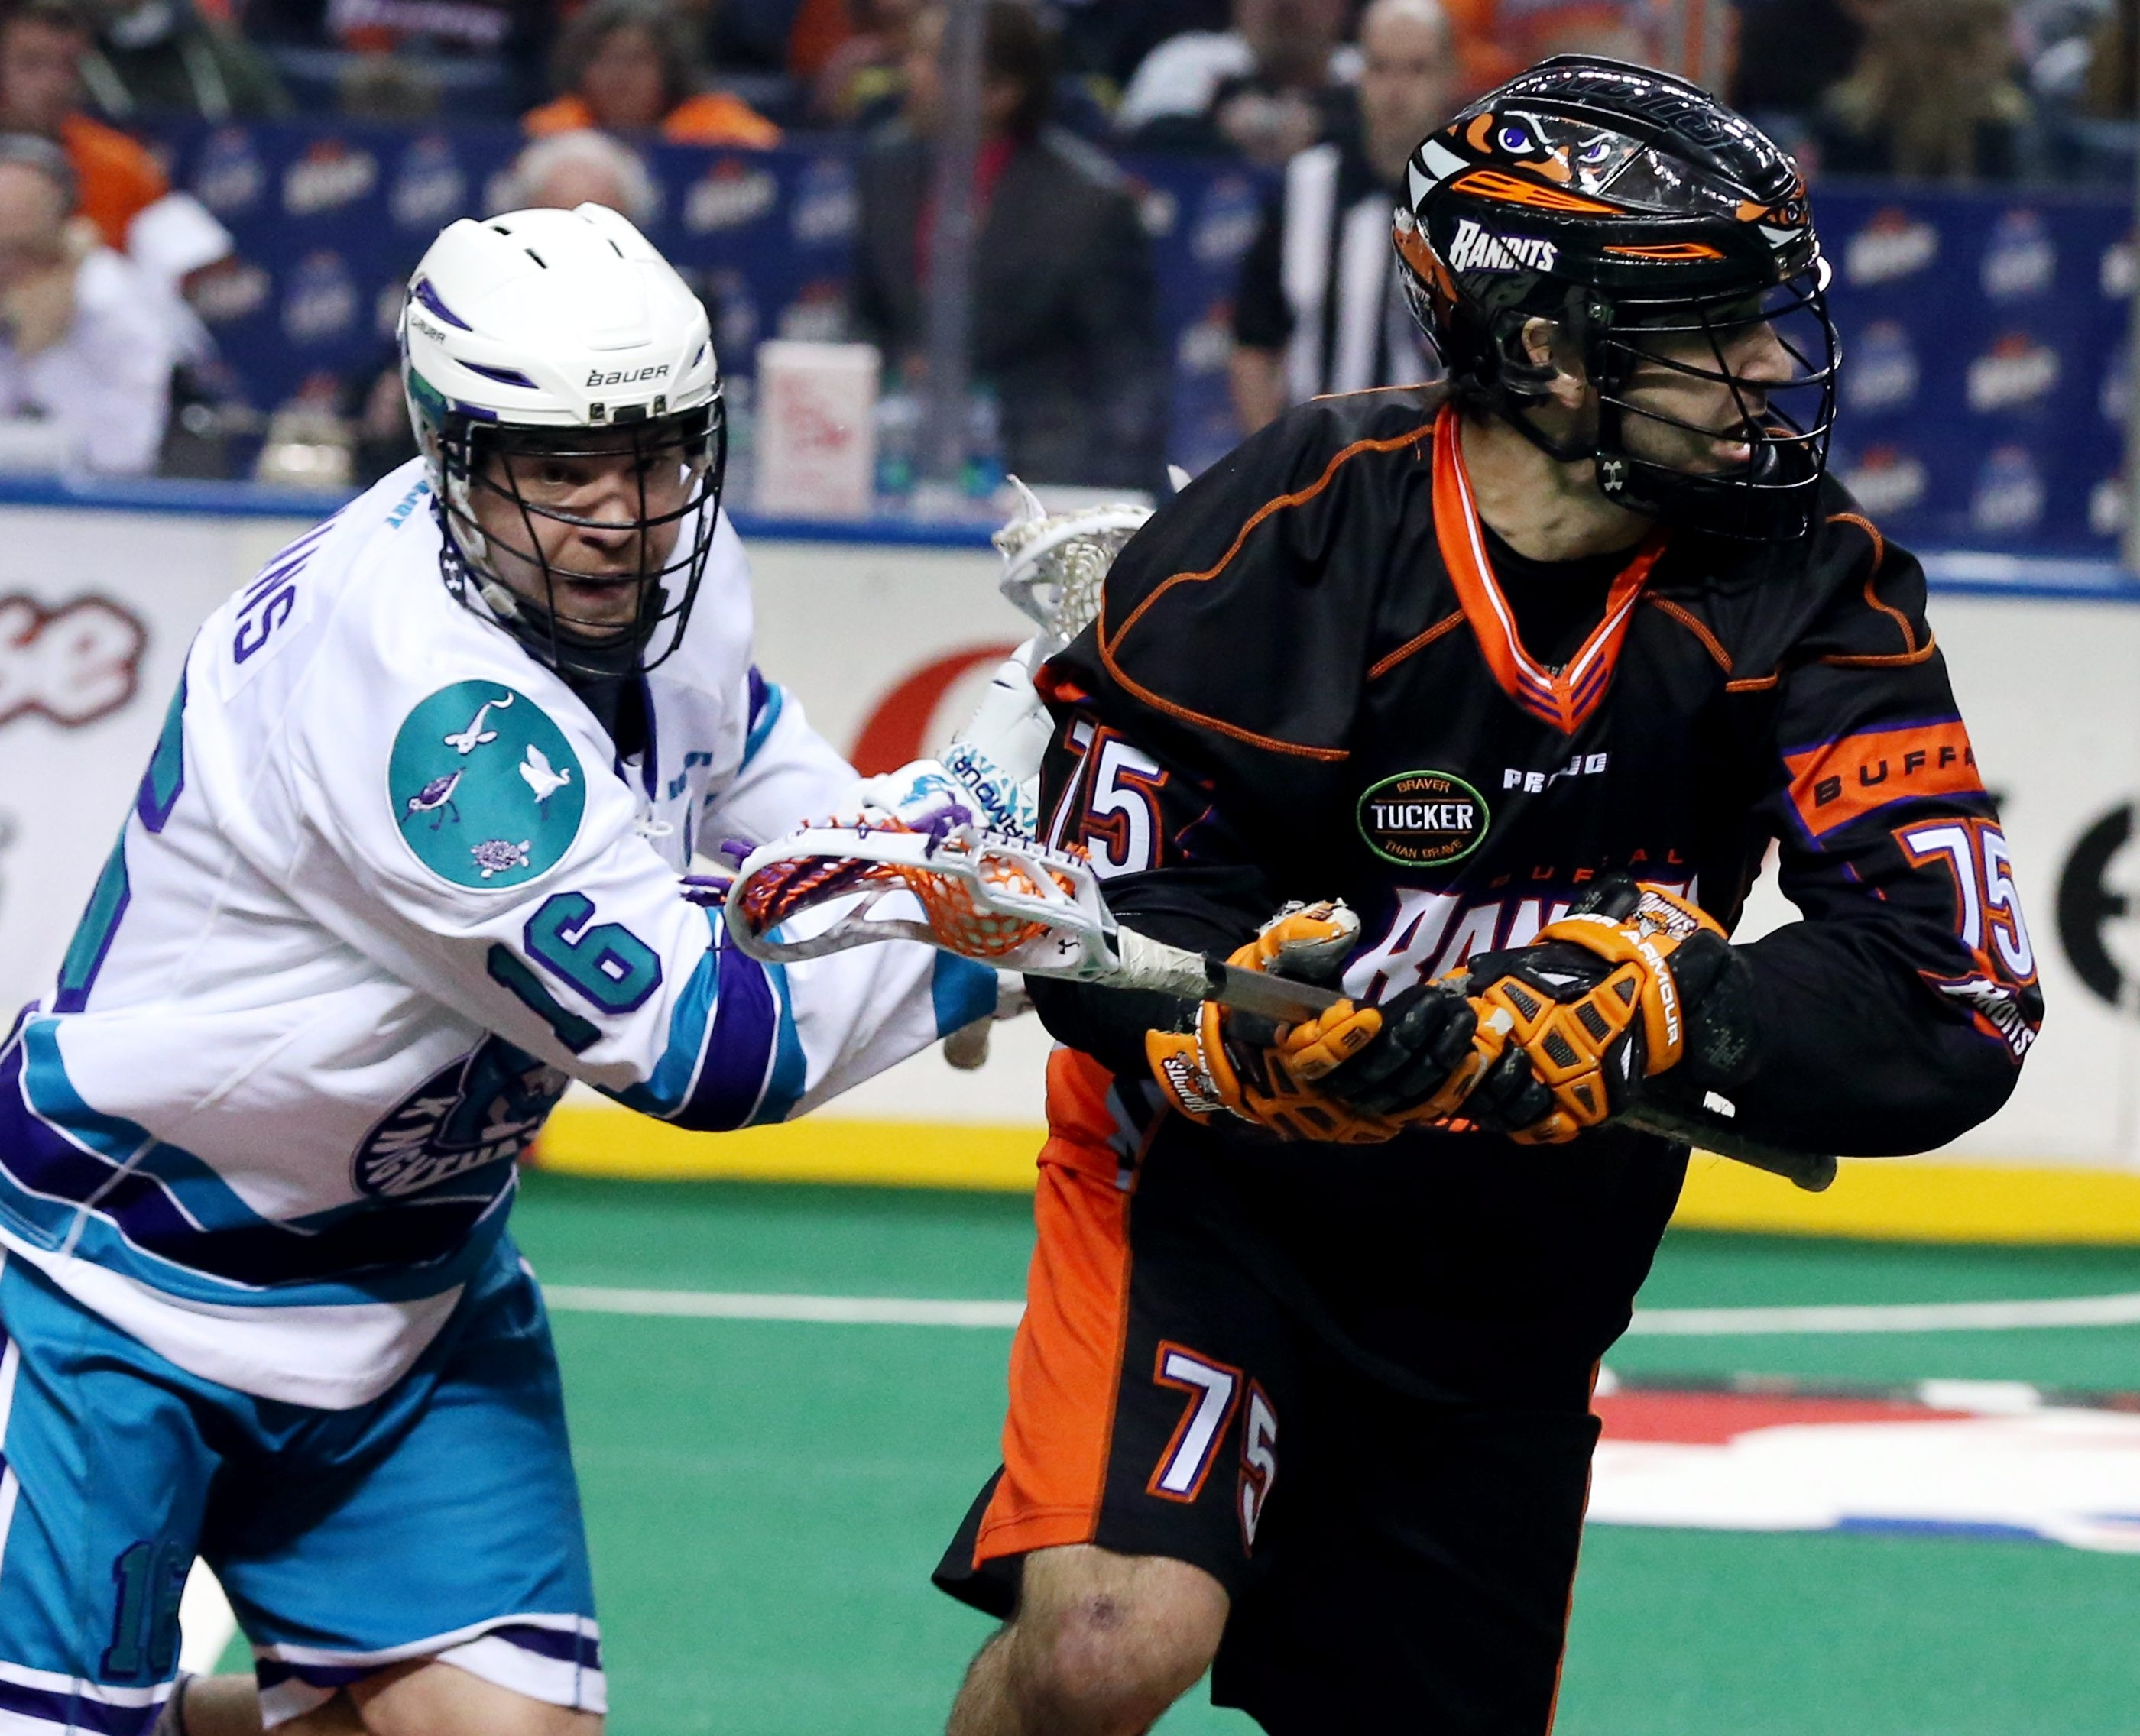 The Bandits' Jay Thorimbert is the leader of a team that's been masterful at corralling loose balls. (James P. McCoy/ Buffalo News)